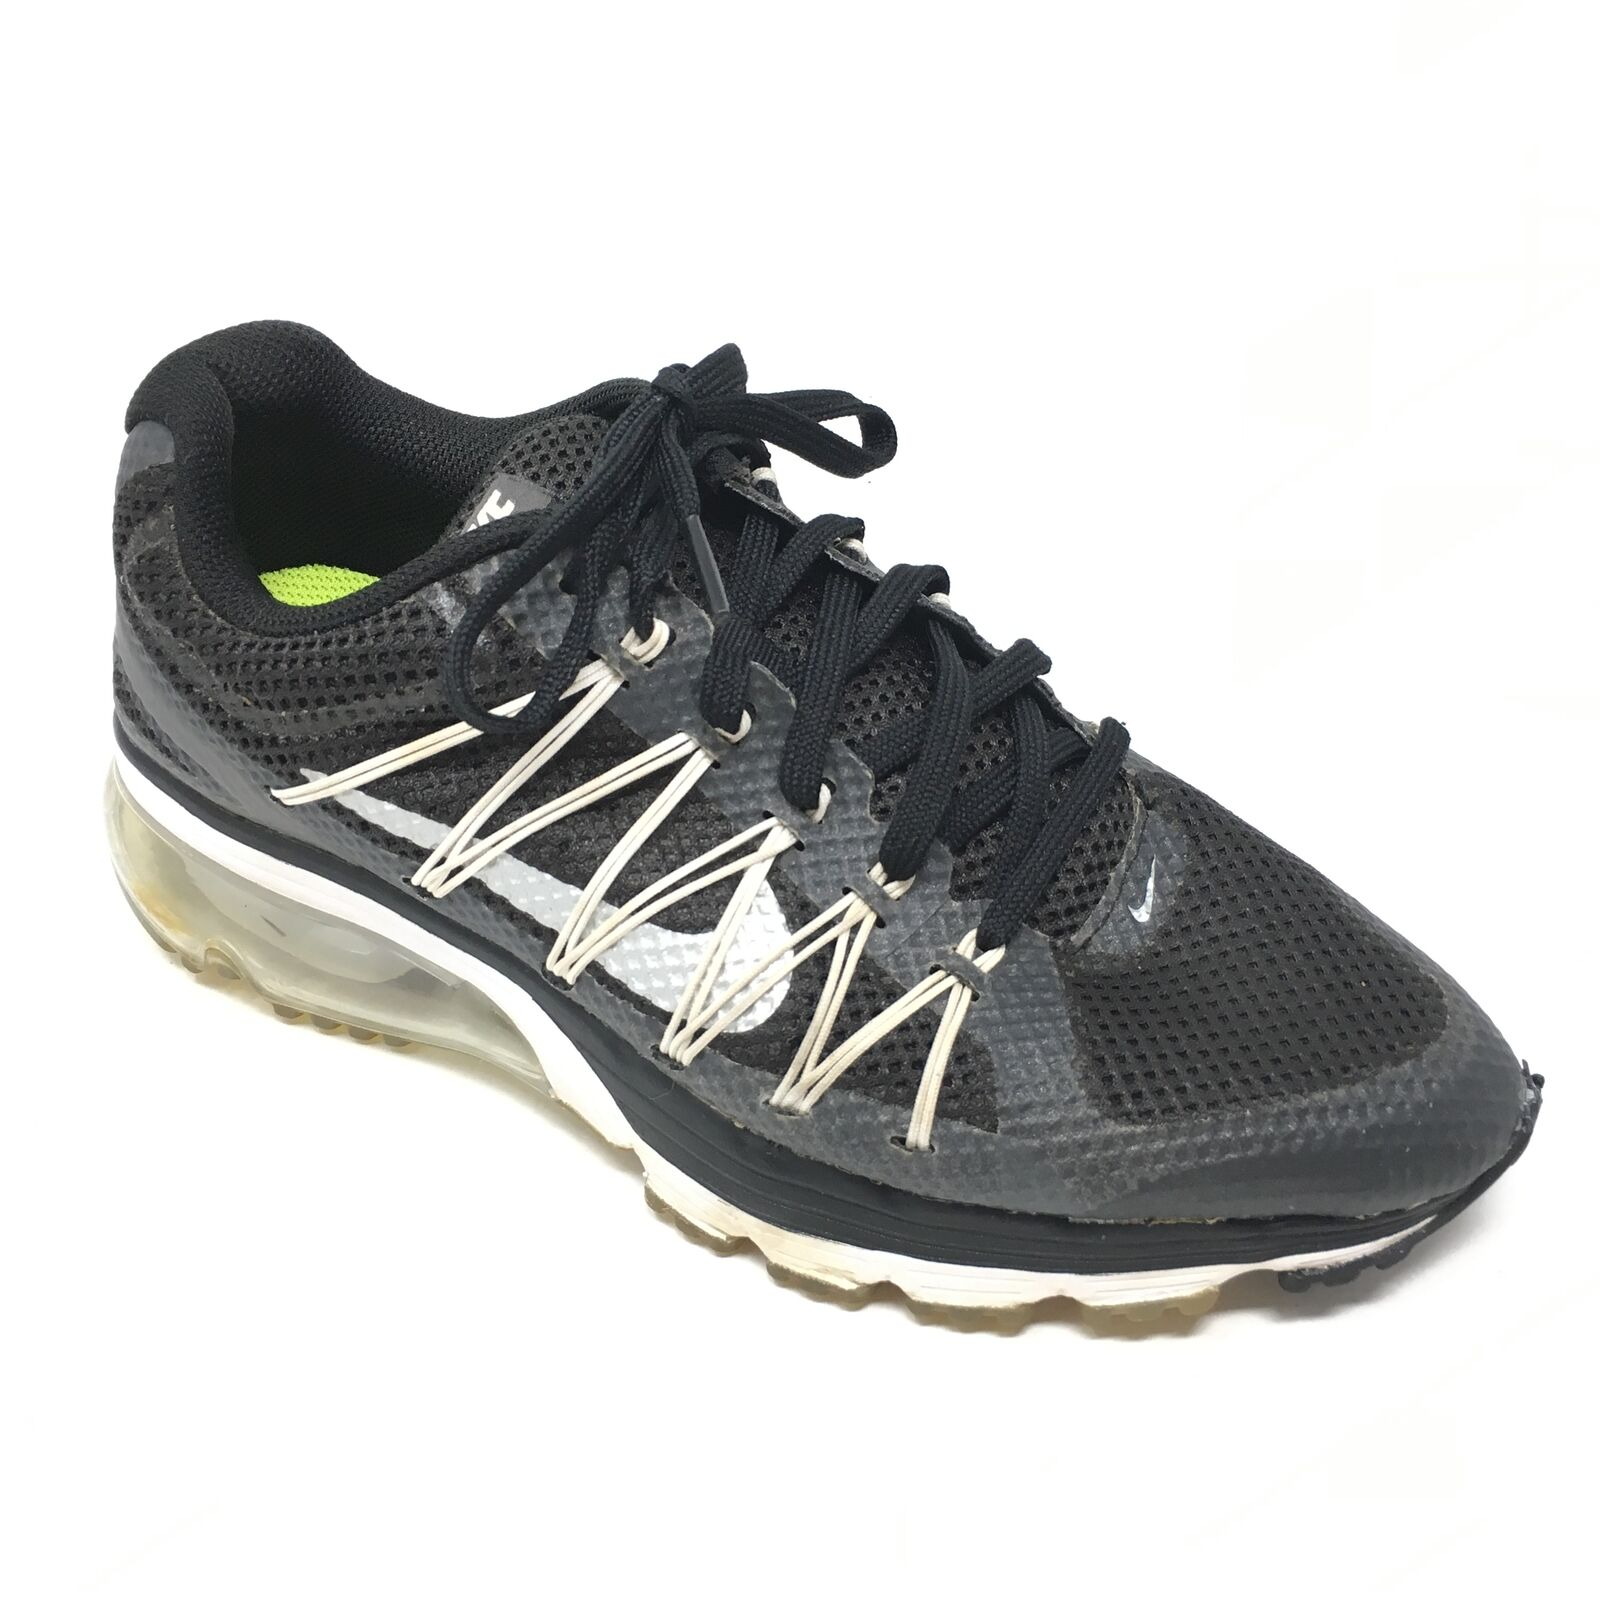 Women's Nike Air Max Excellerate 3 Shoes Sneakers Comfortable